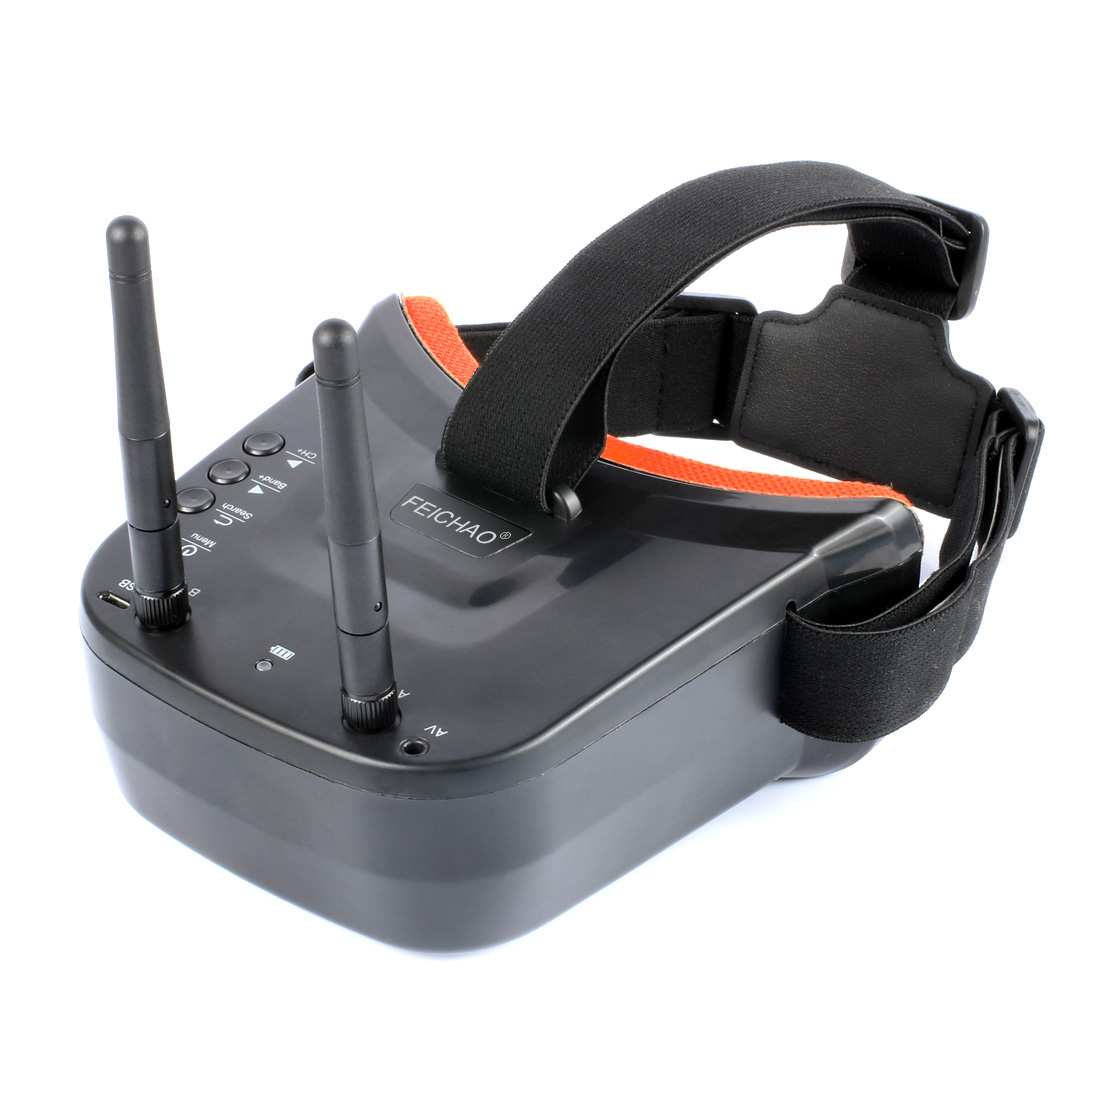 New Mini FPV Goggles 3 inch 480 x 320 Display Double Antenna 5.8G 40CH Built in 3.7V 1200mAh Battery for Racing Drone Models